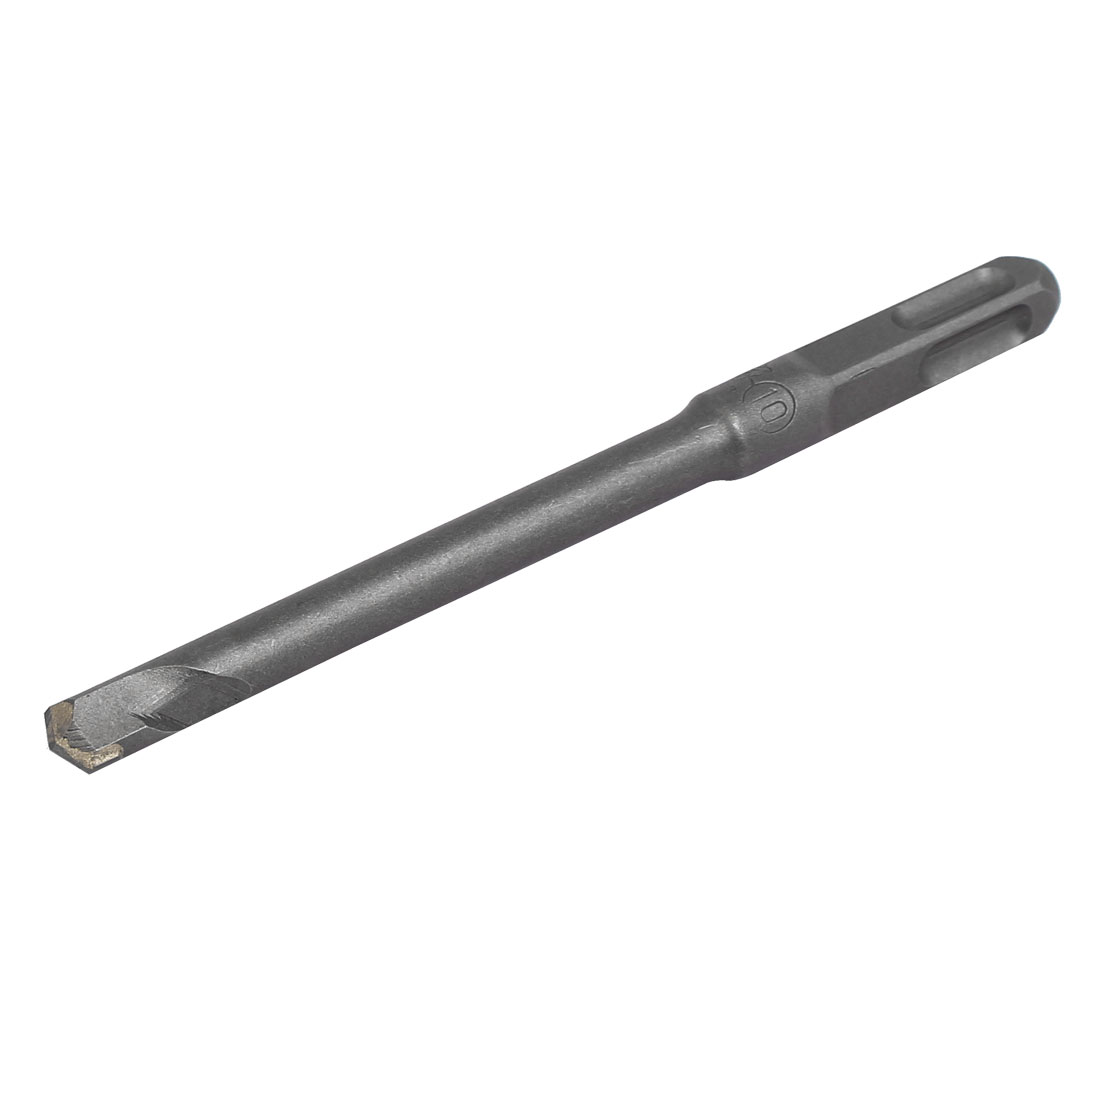 10mm Tip 160mm Long Chrome Steel Square SDS Plus Shank Masonry Hammer Drill Bit by Unique-Bargains